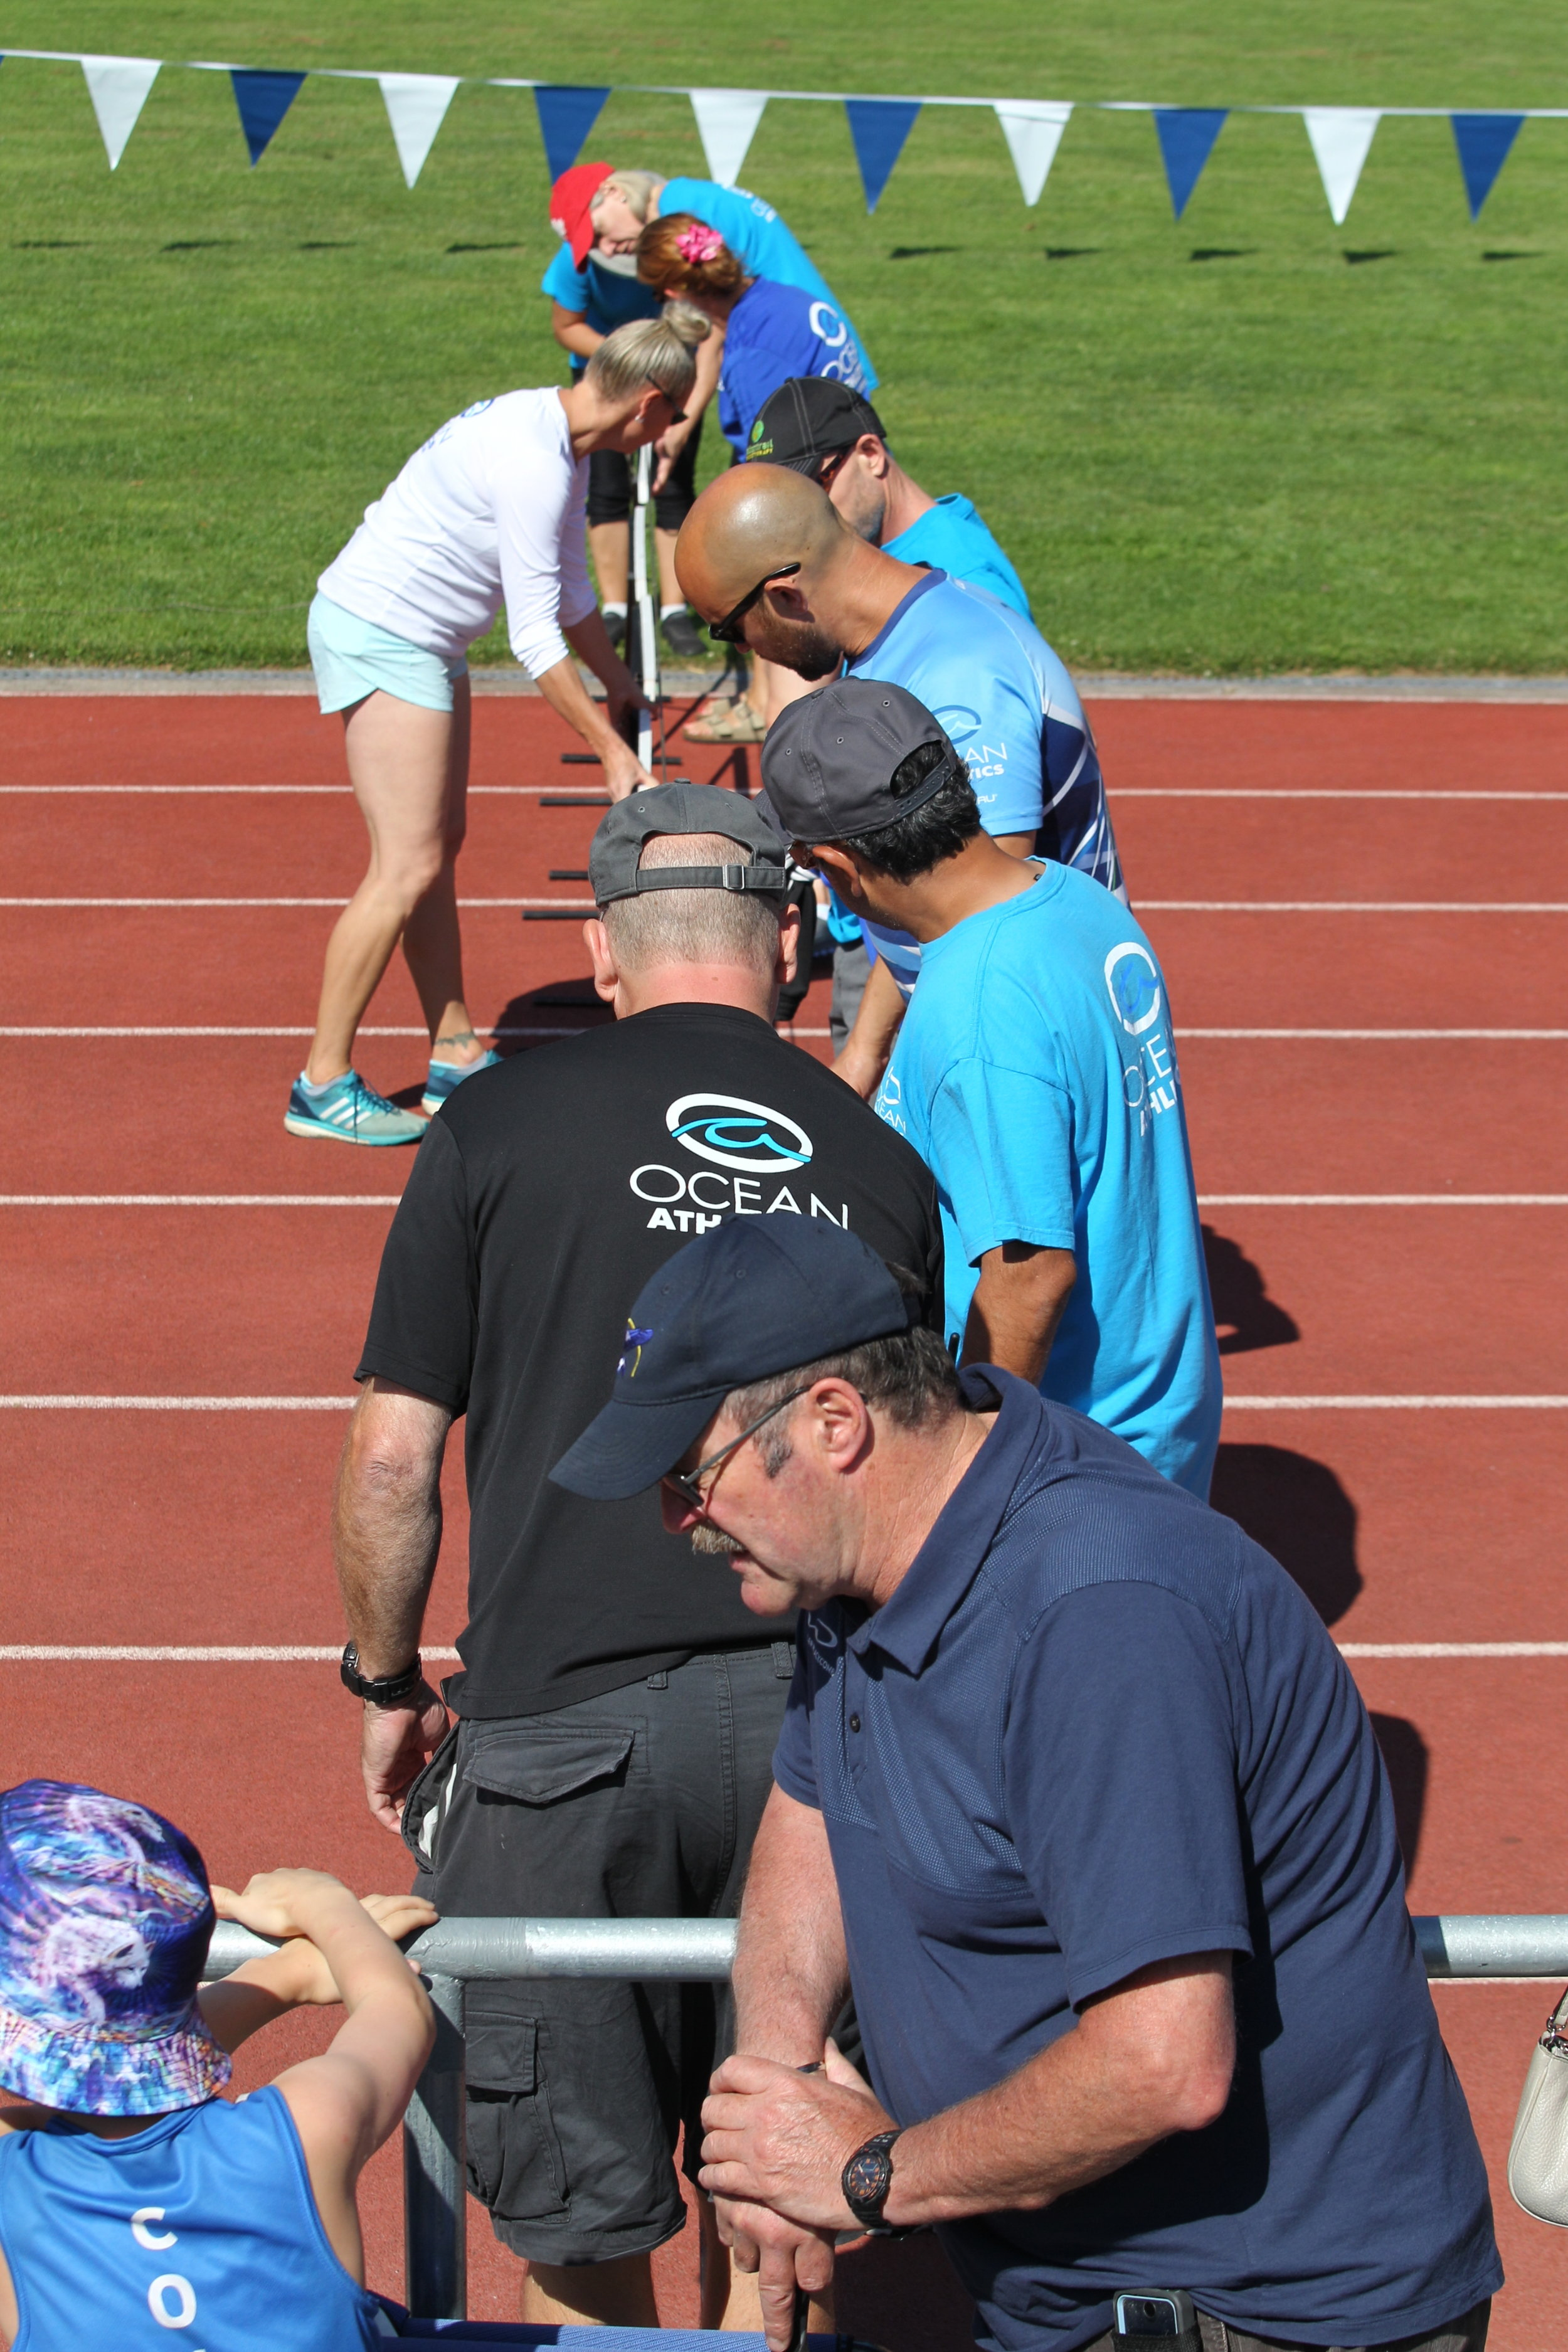 190720--Gordon Kalisch-Fasttracksportsphotography-28041.JPG